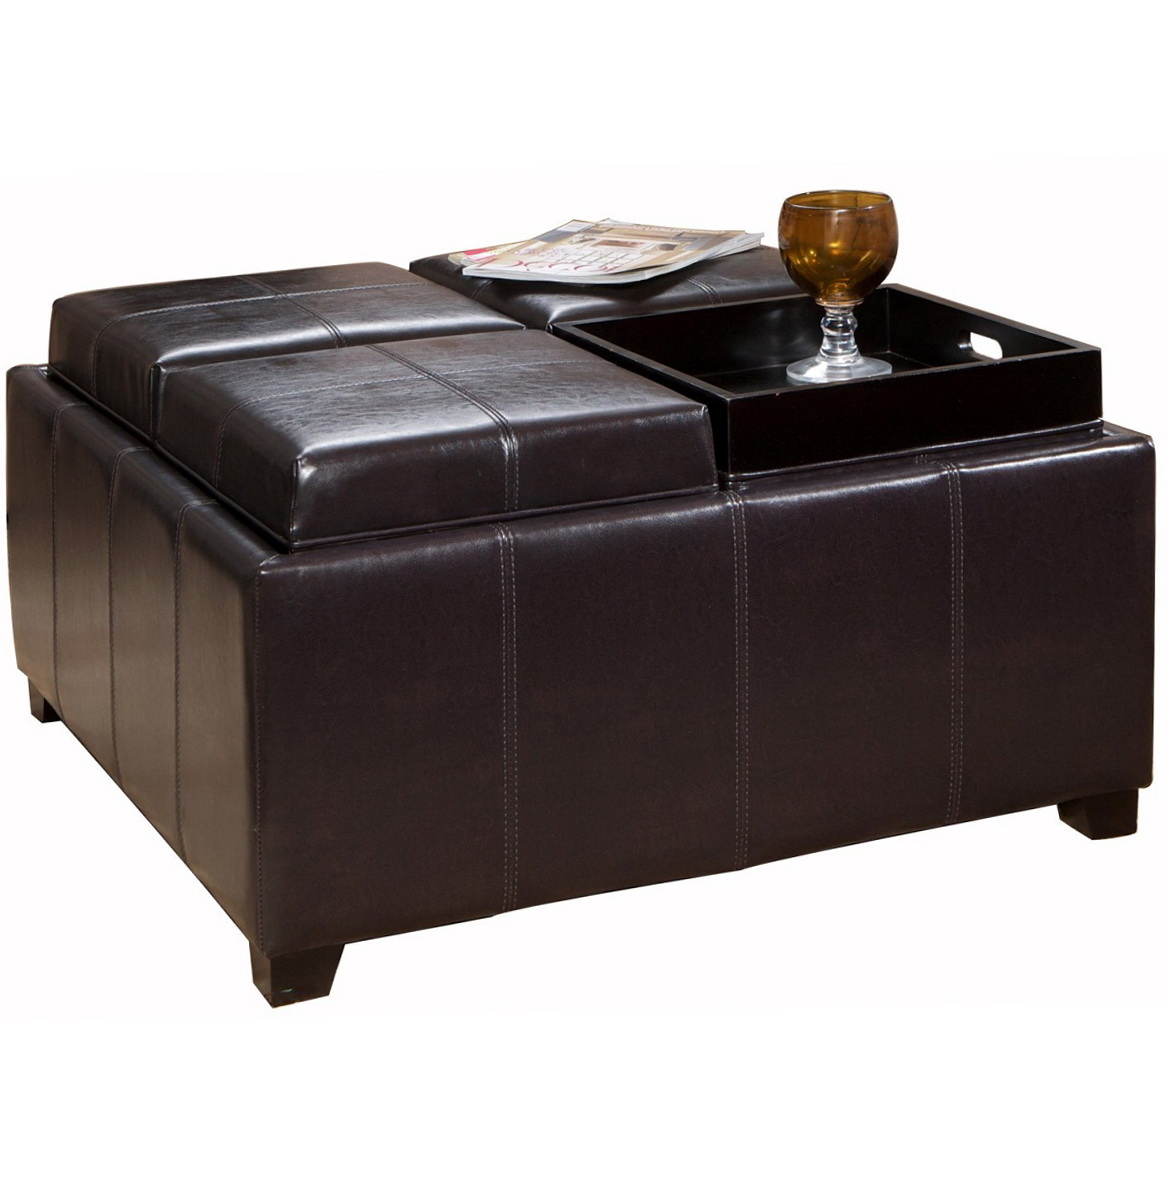 Large Ottoman Coffee Table Tray: Leather Ottoman Coffee Table With Tray